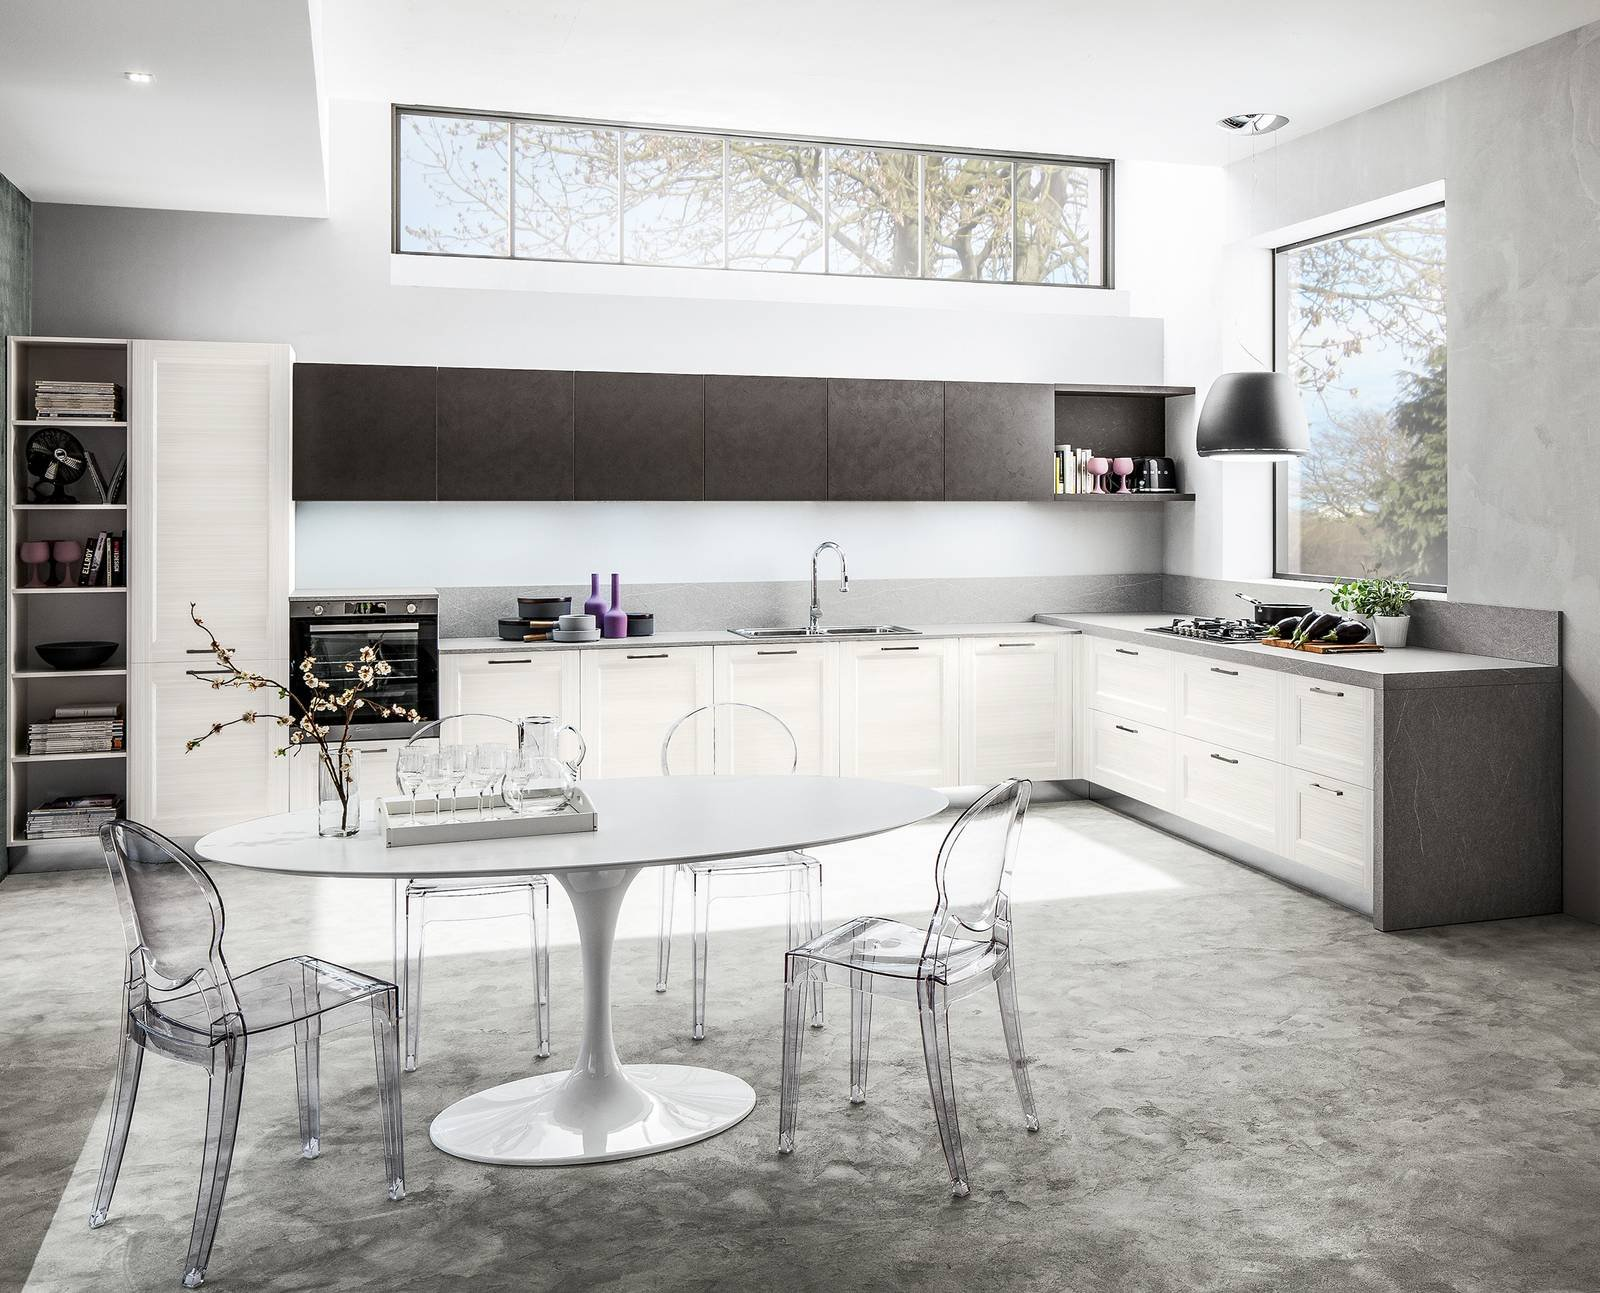 Emejing Cucine Ad L Pictures - Ideas & Design 2017 ...